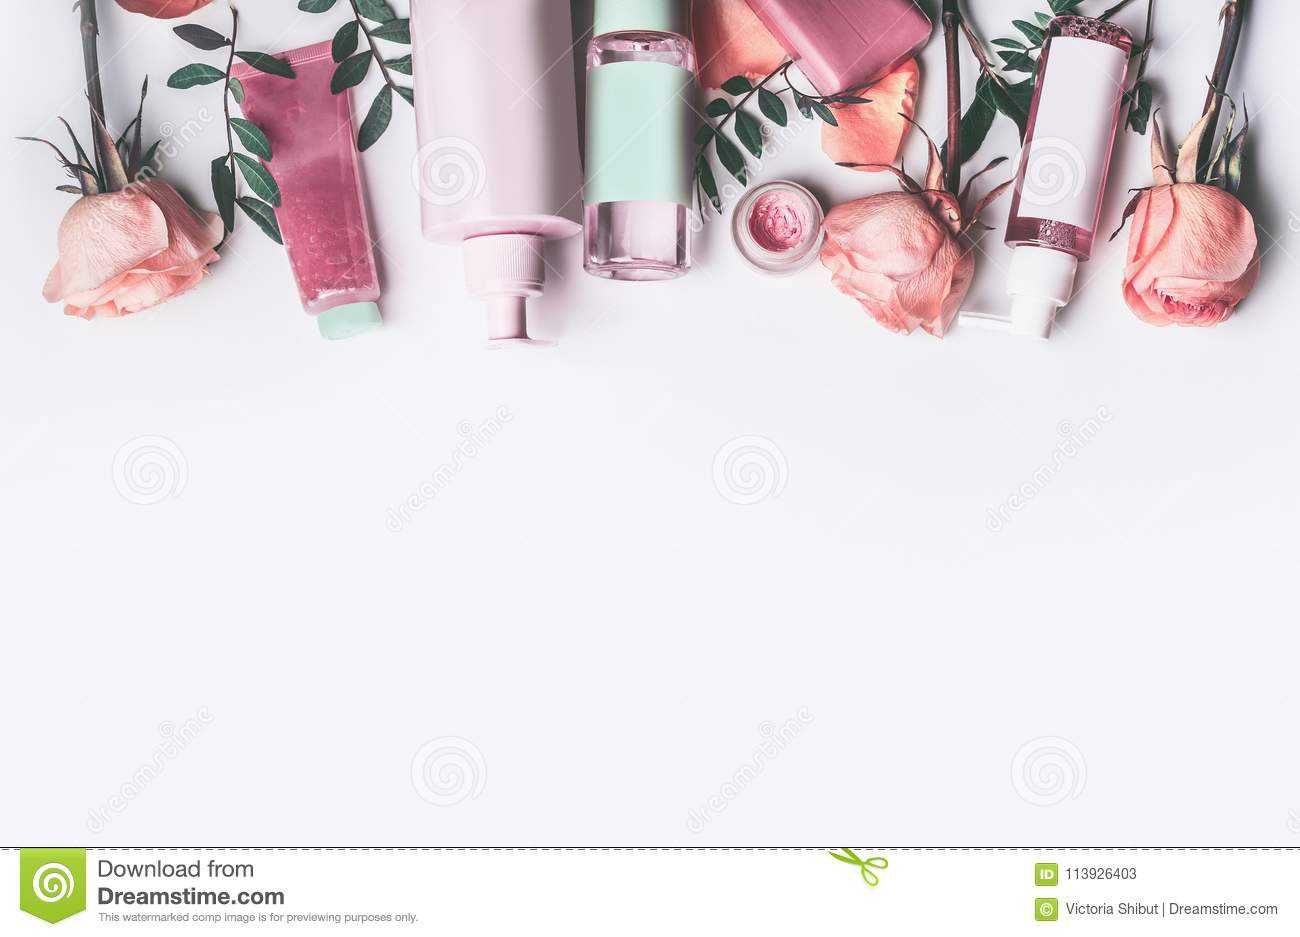 Cosmetics set with Rose essential oils: toner, serum, essence, moisturizer and and others on white